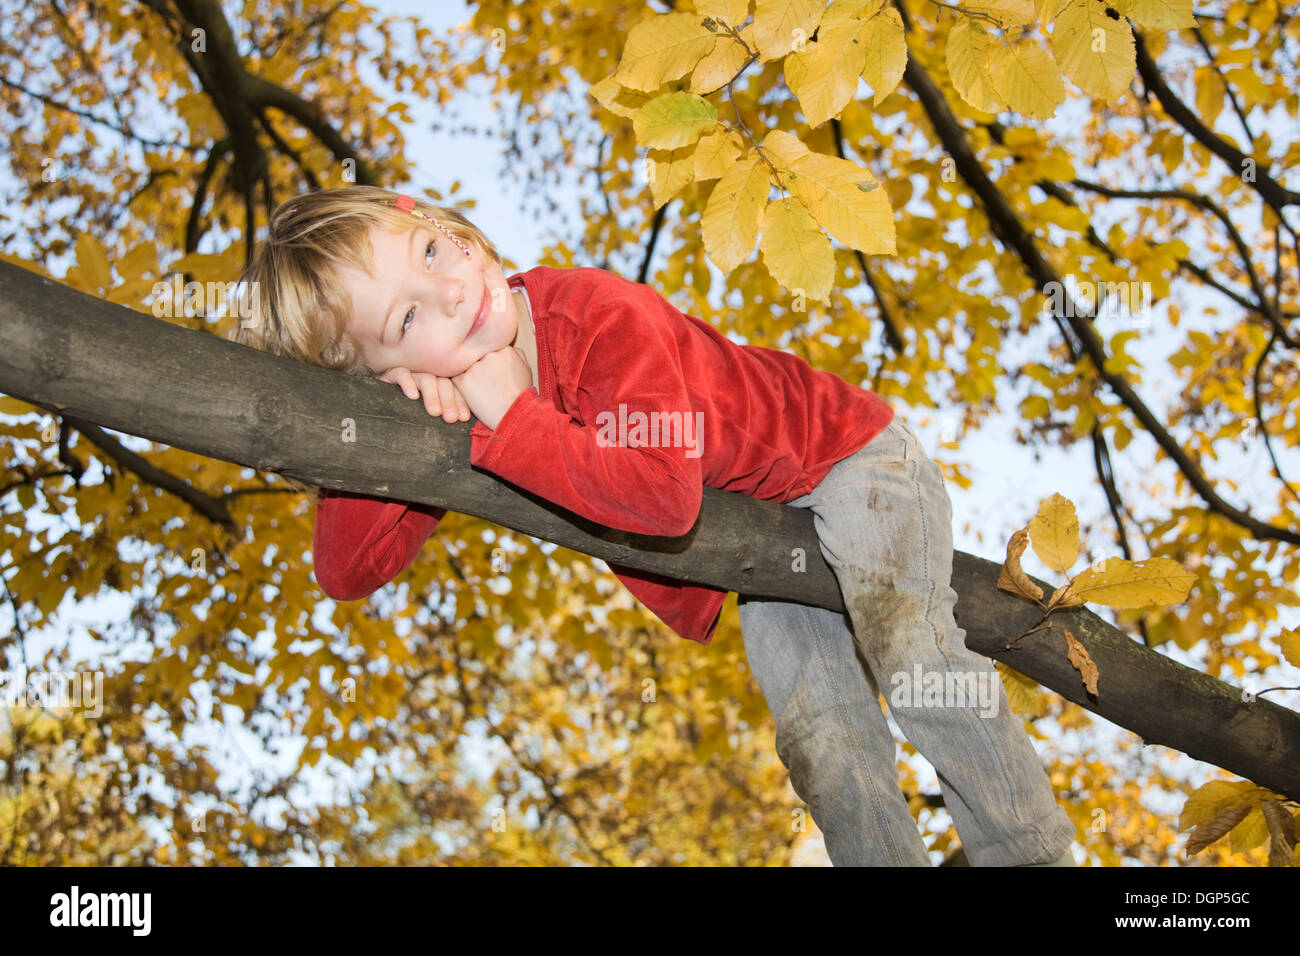 Little dreamy girl on a branch - Stock Image